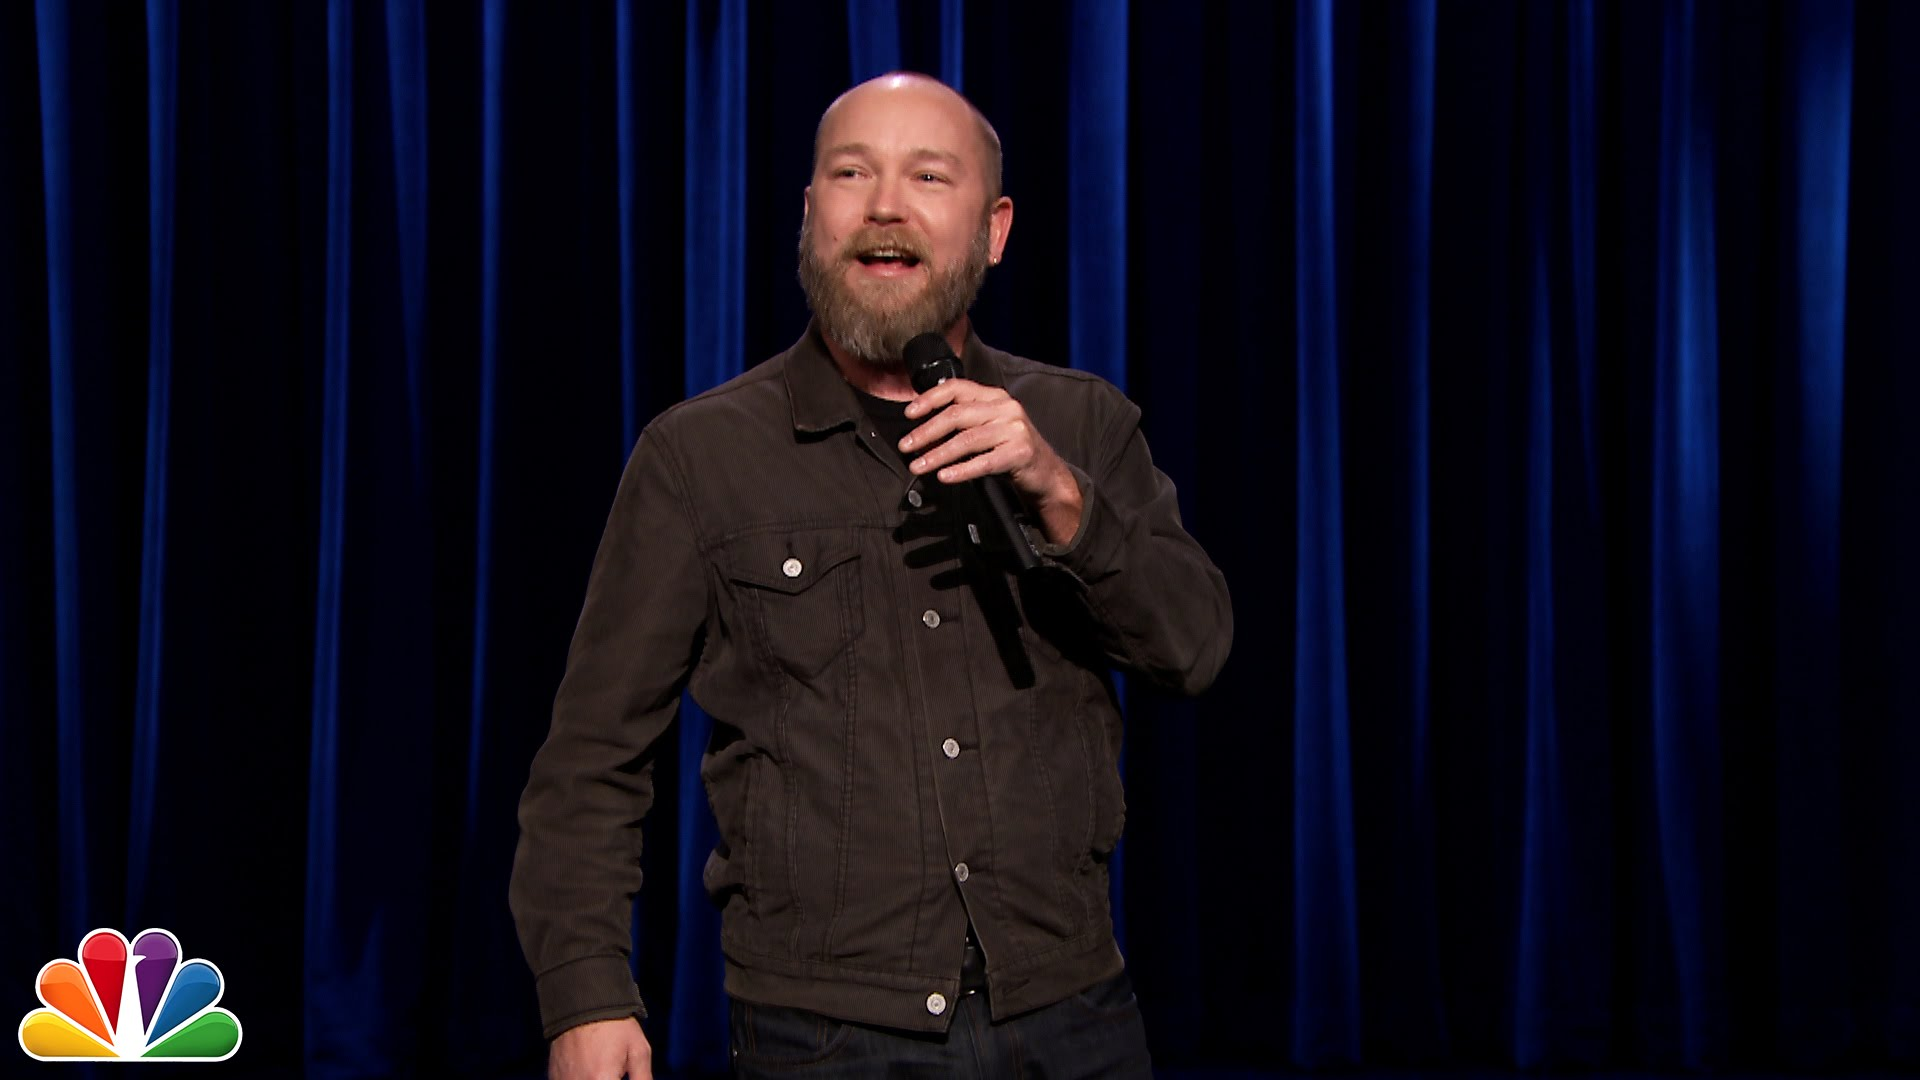 Kyle Kinane on The Tonight Show Starring Jimmy Fallon